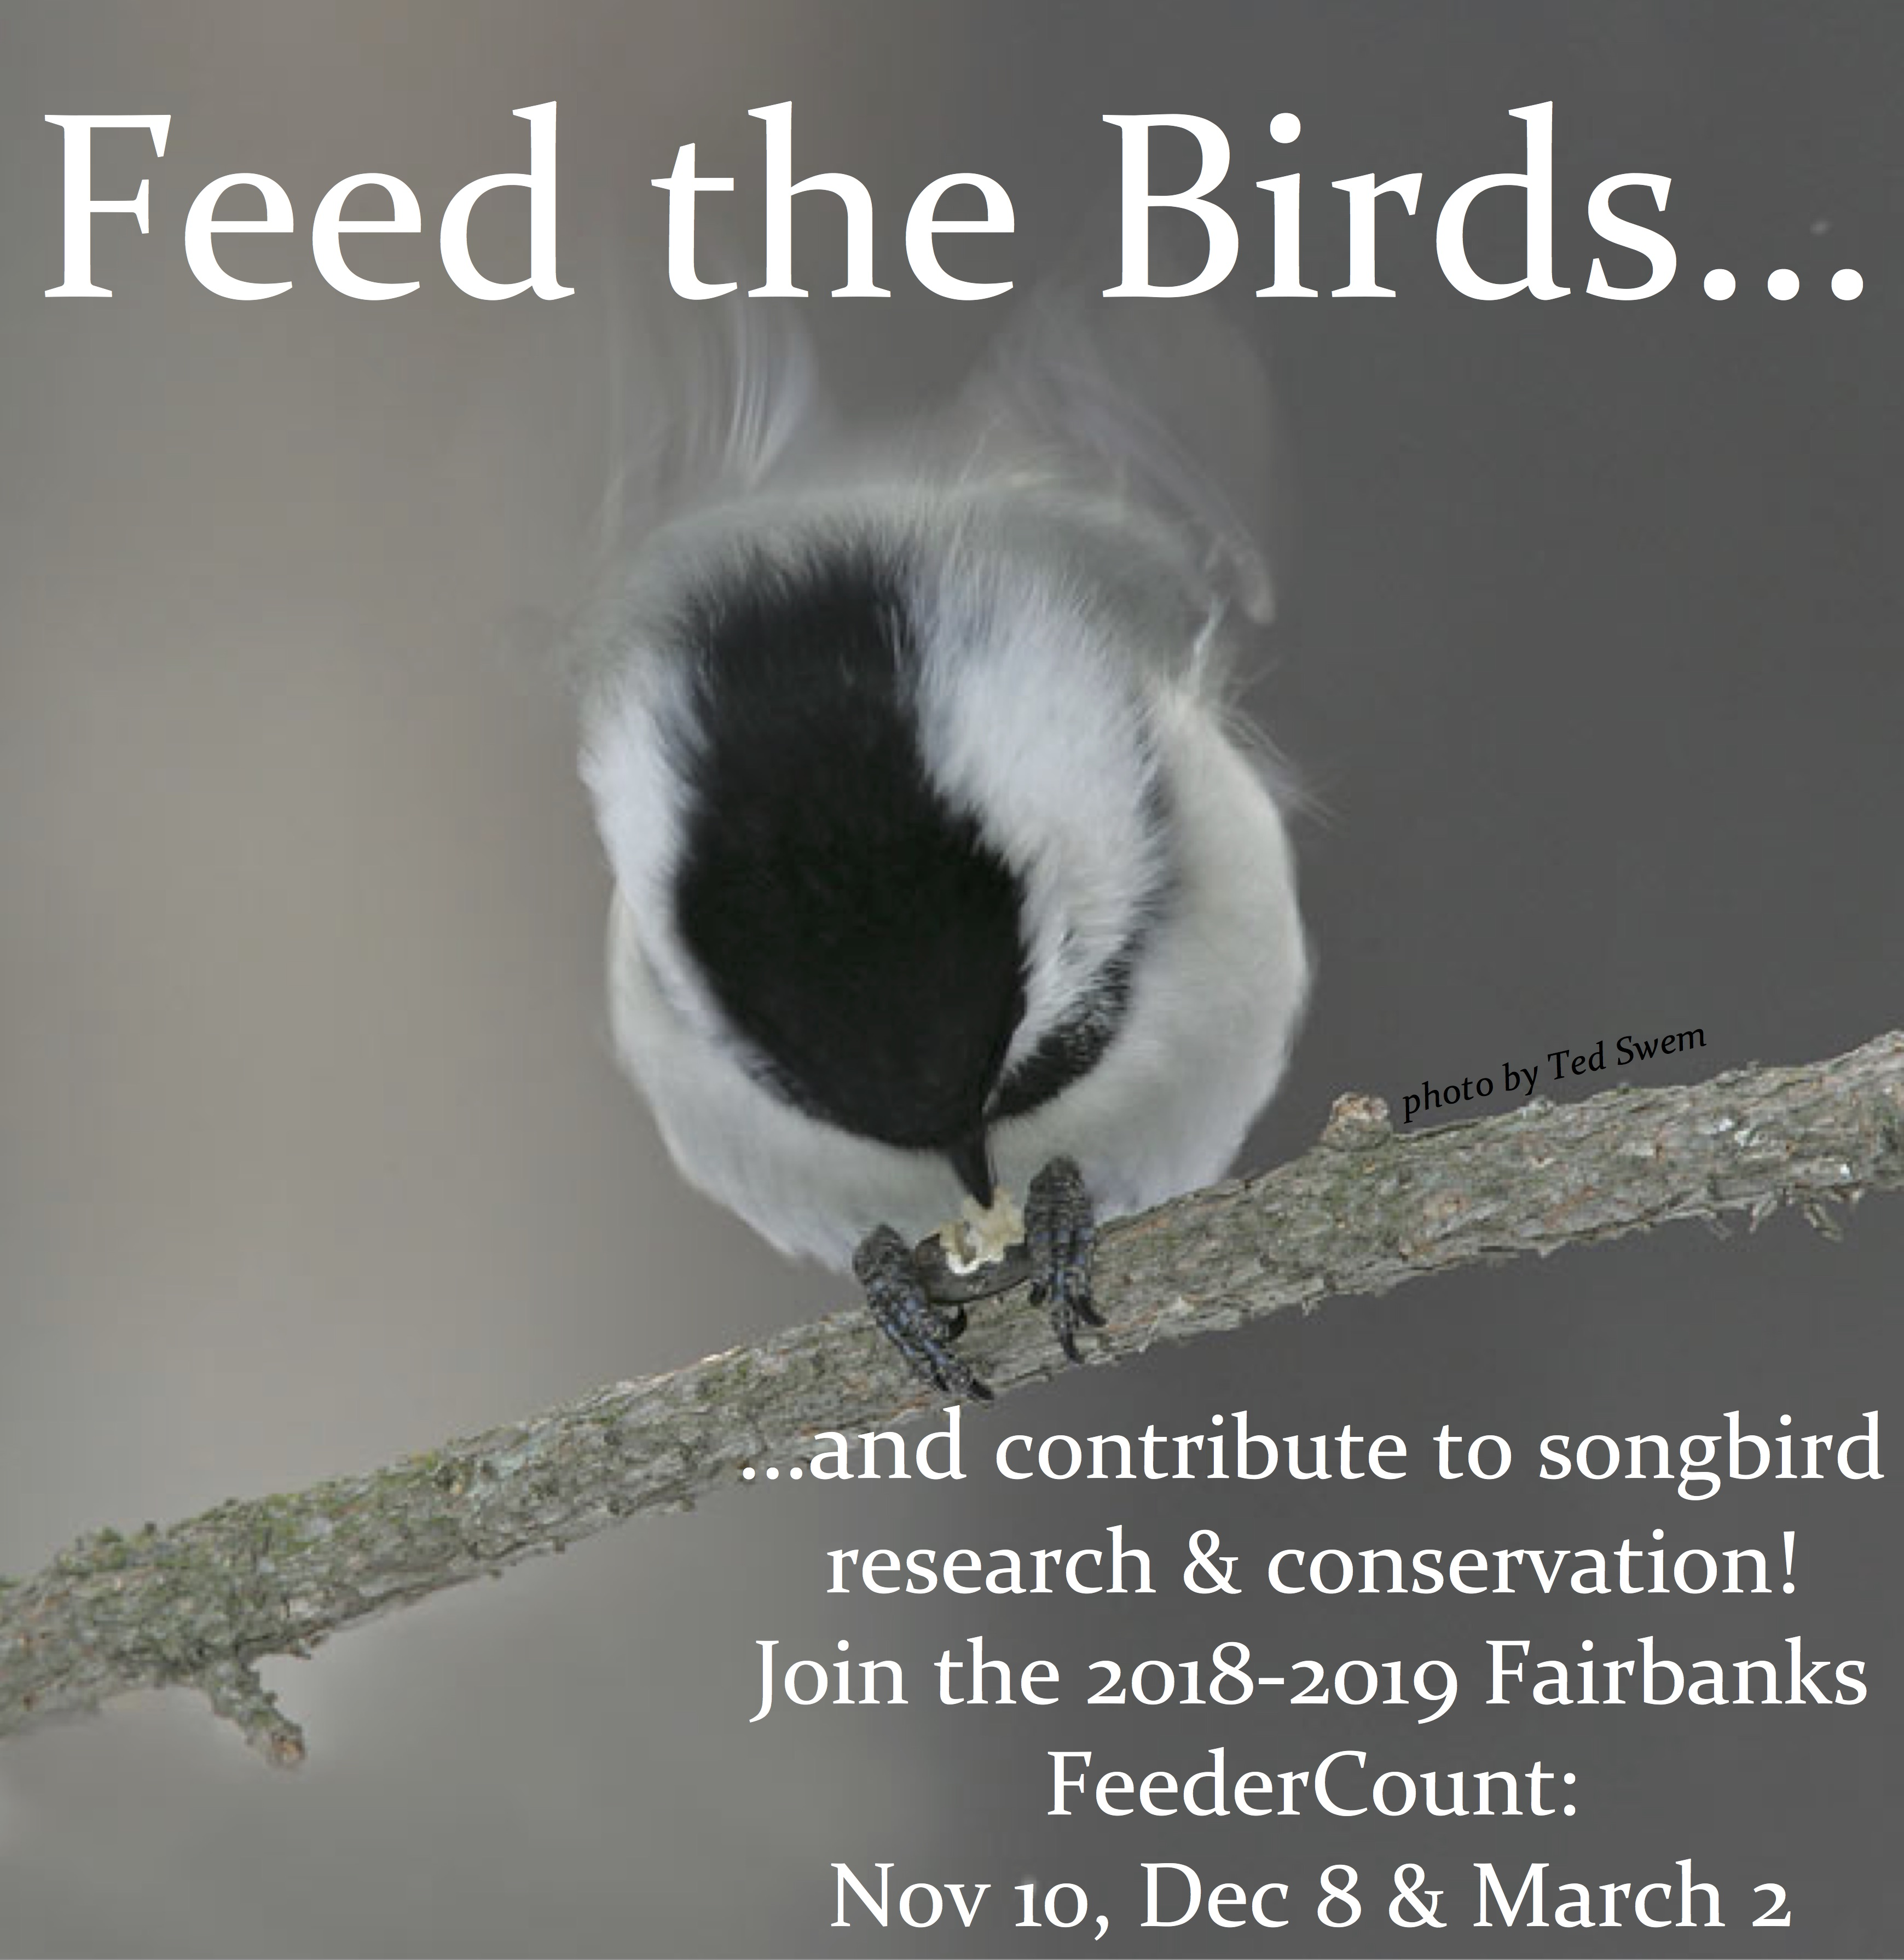 dating site for feeders